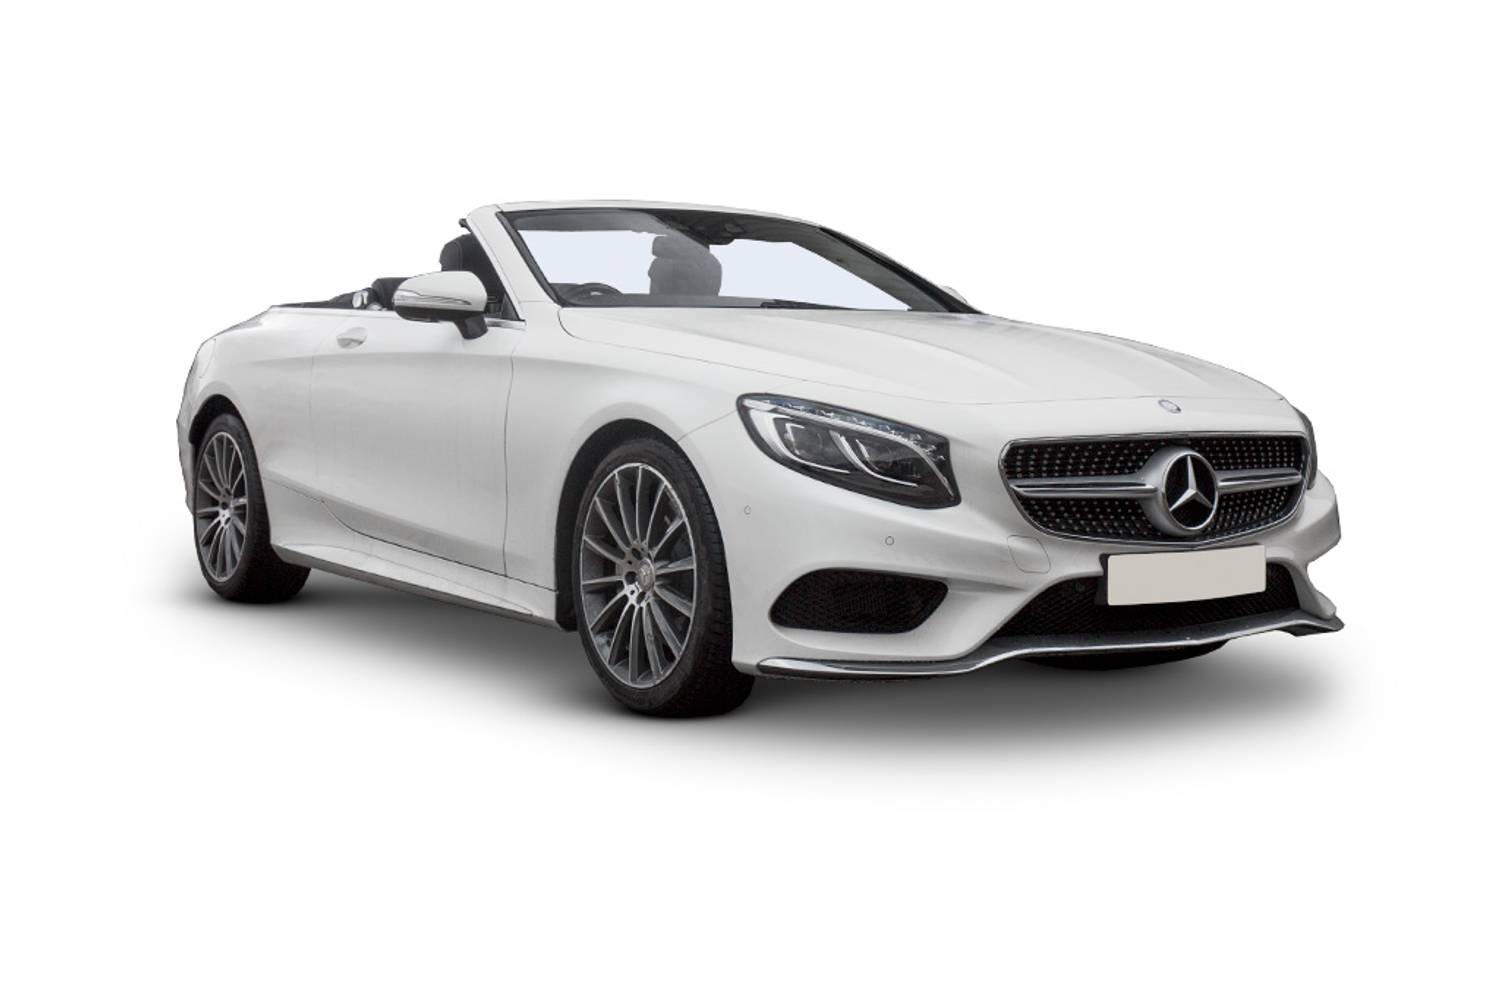 new mercedes benz s class cabriolet s560 amg line 2 door auto 2018 for sale. Black Bedroom Furniture Sets. Home Design Ideas